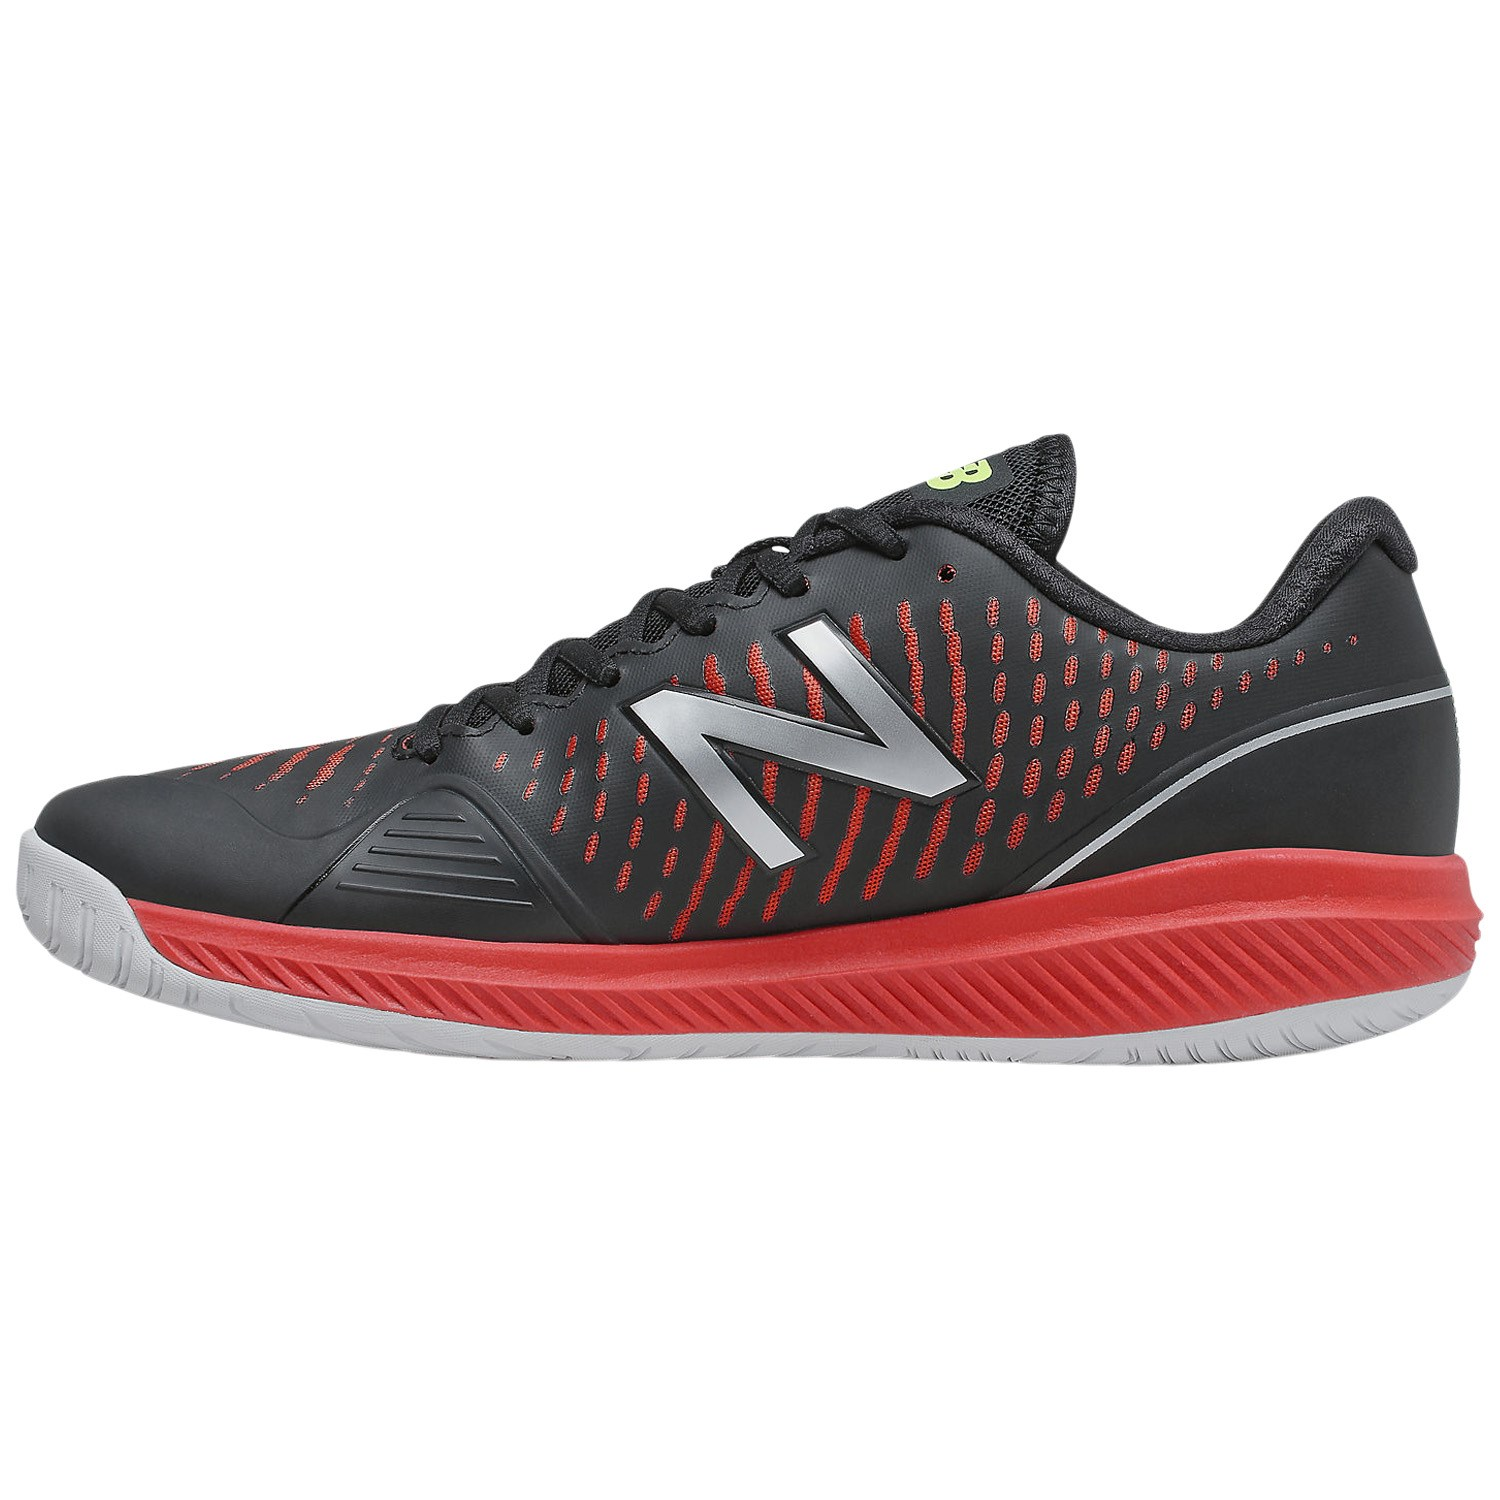 New Balance MCH796v2 Men's Tennis Shoe – Black/Velocity Red